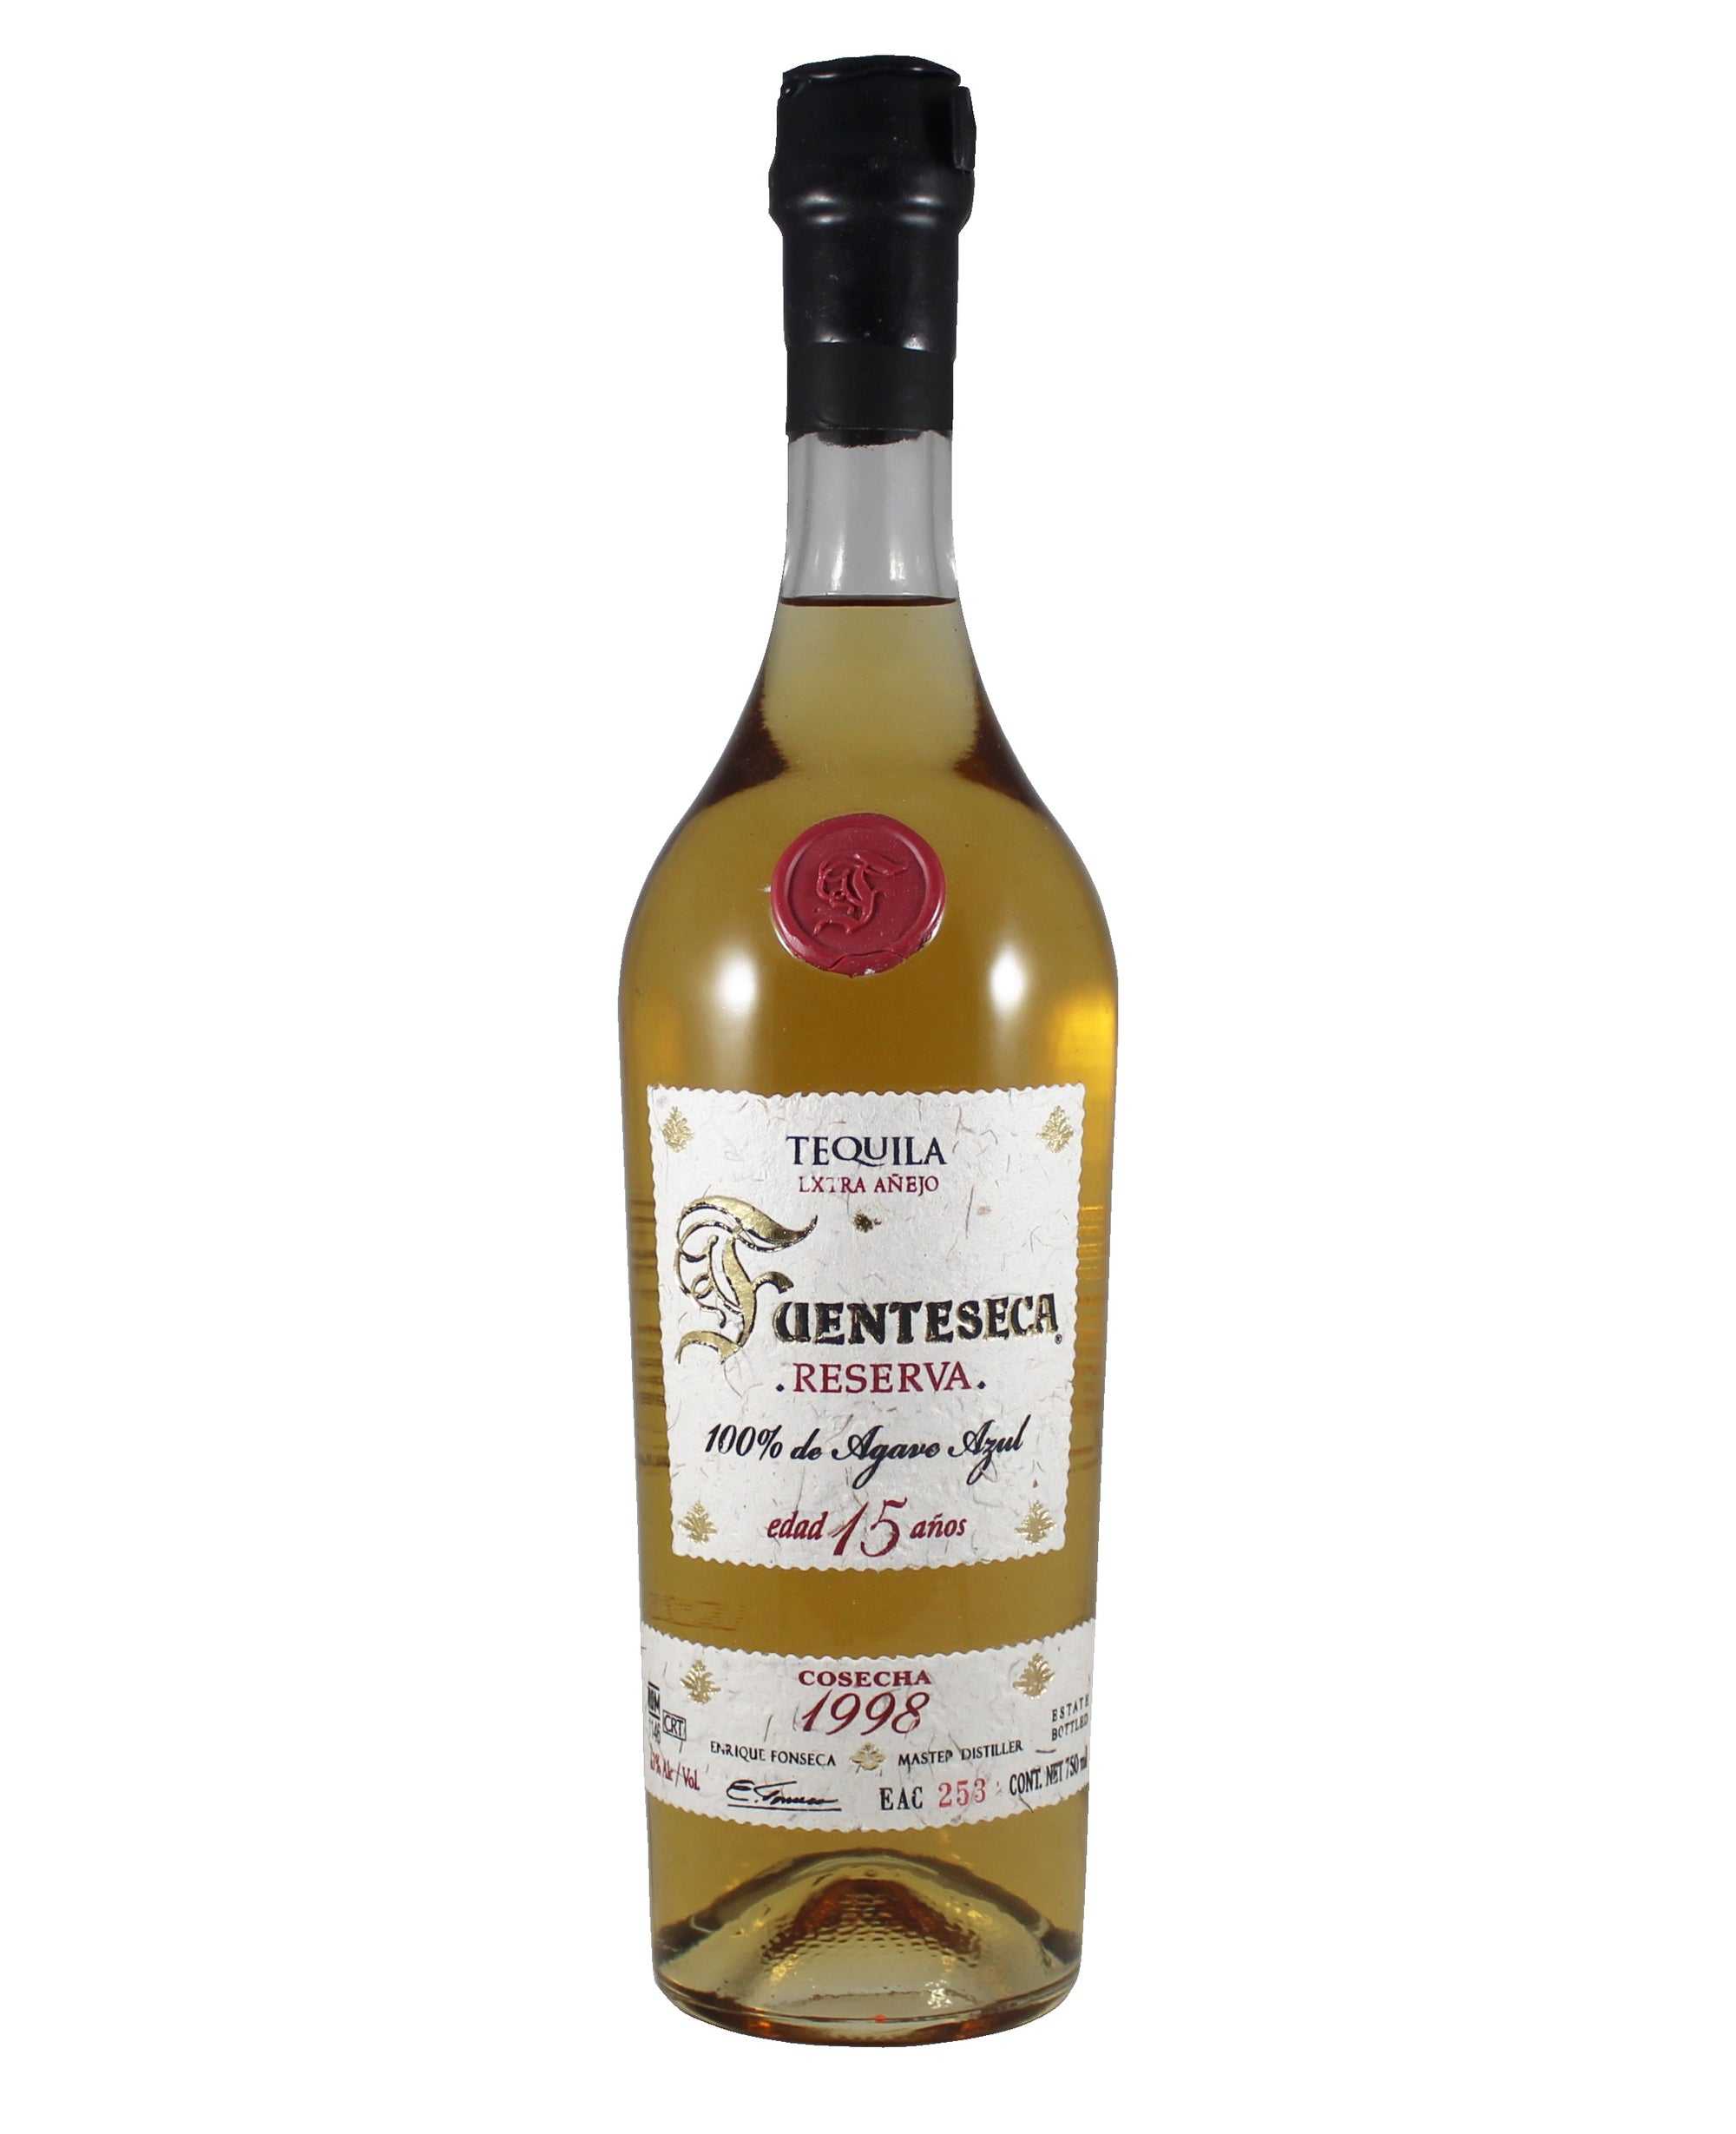 1998 Fuenteseca Reserve Anejo 15 Year Tequila (Jalisco, MX)